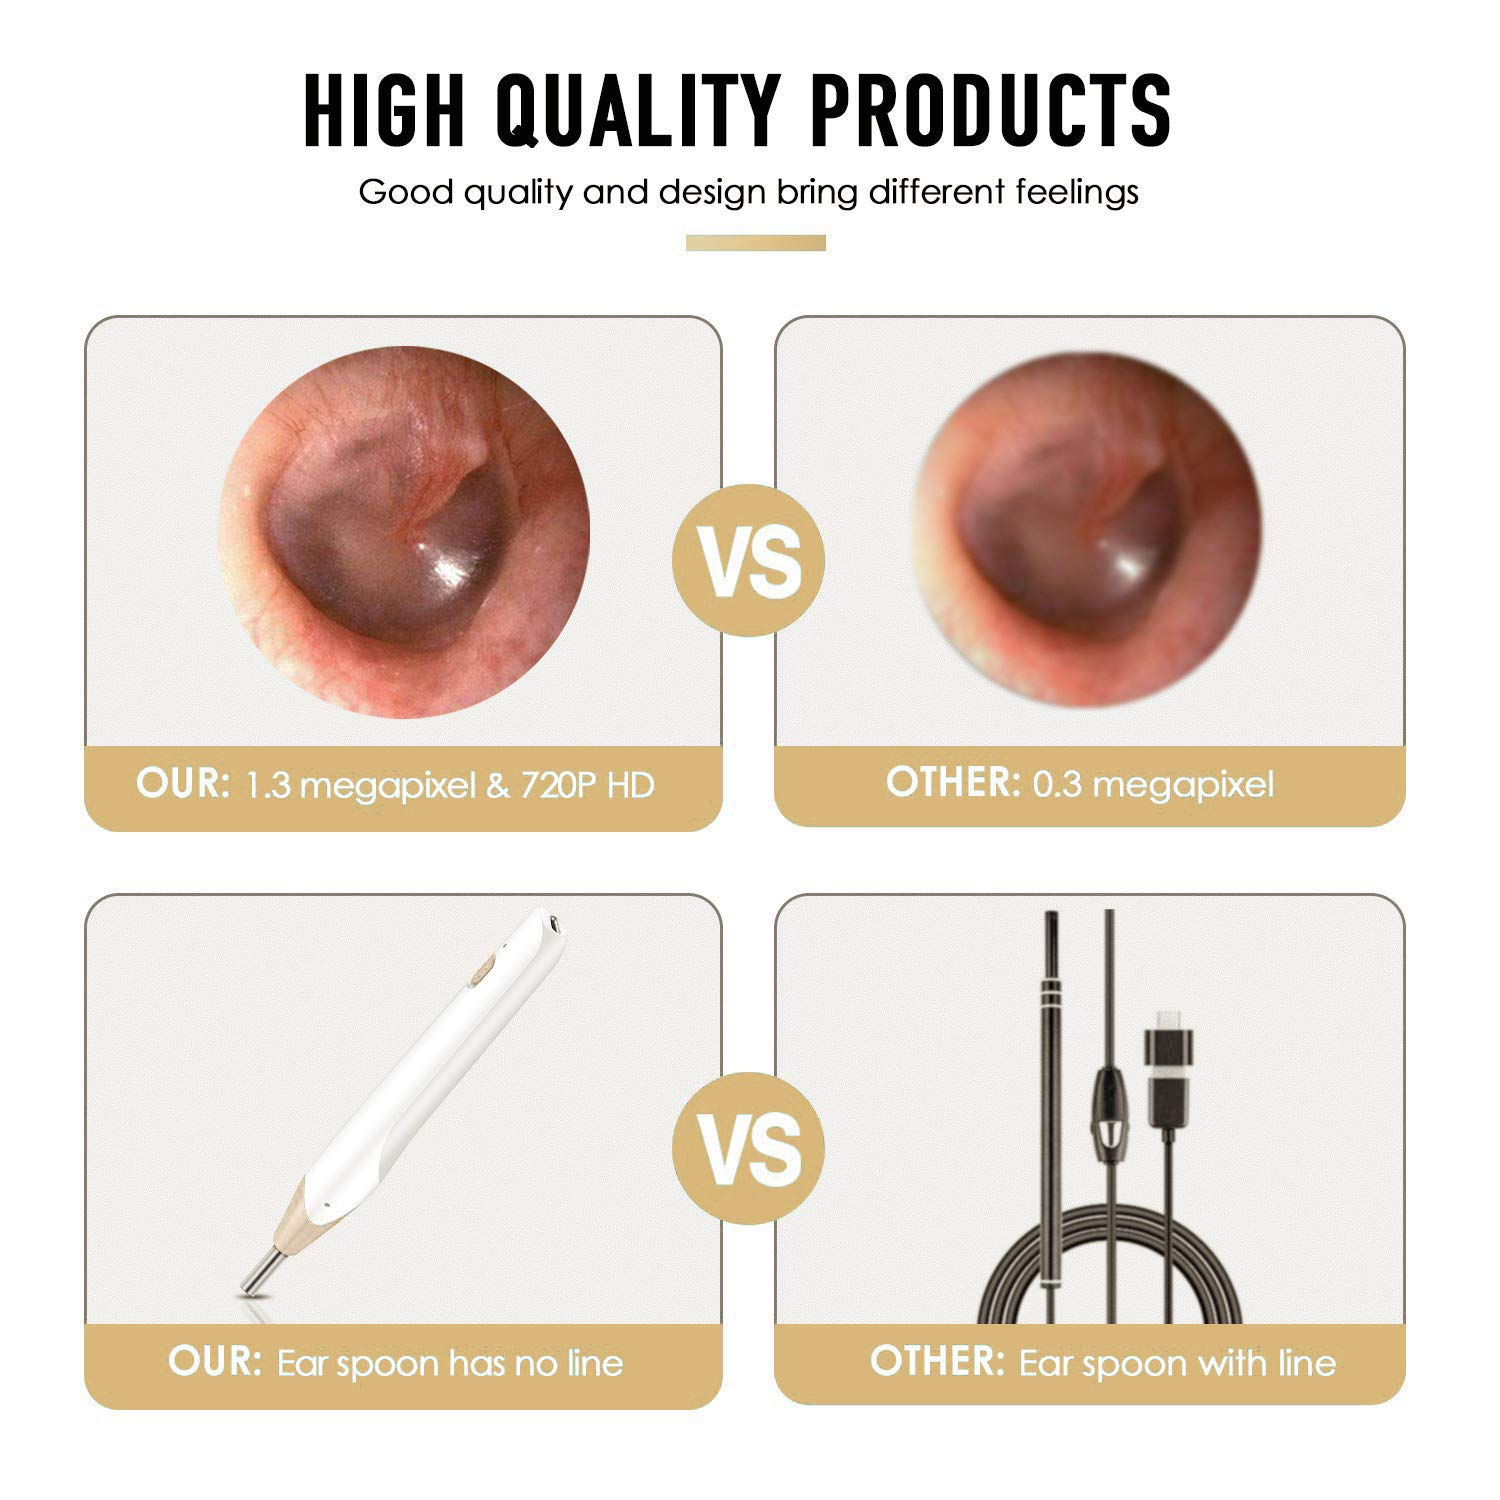 Xiaomax WiFi Digital Ear Scope Inspection Ear Camera Endoscope Earwax Cleaning Remover Tool for iPhone Android Devices Newest Wireless Ear Otoscope with Image Stabilizer System iPad Samsung